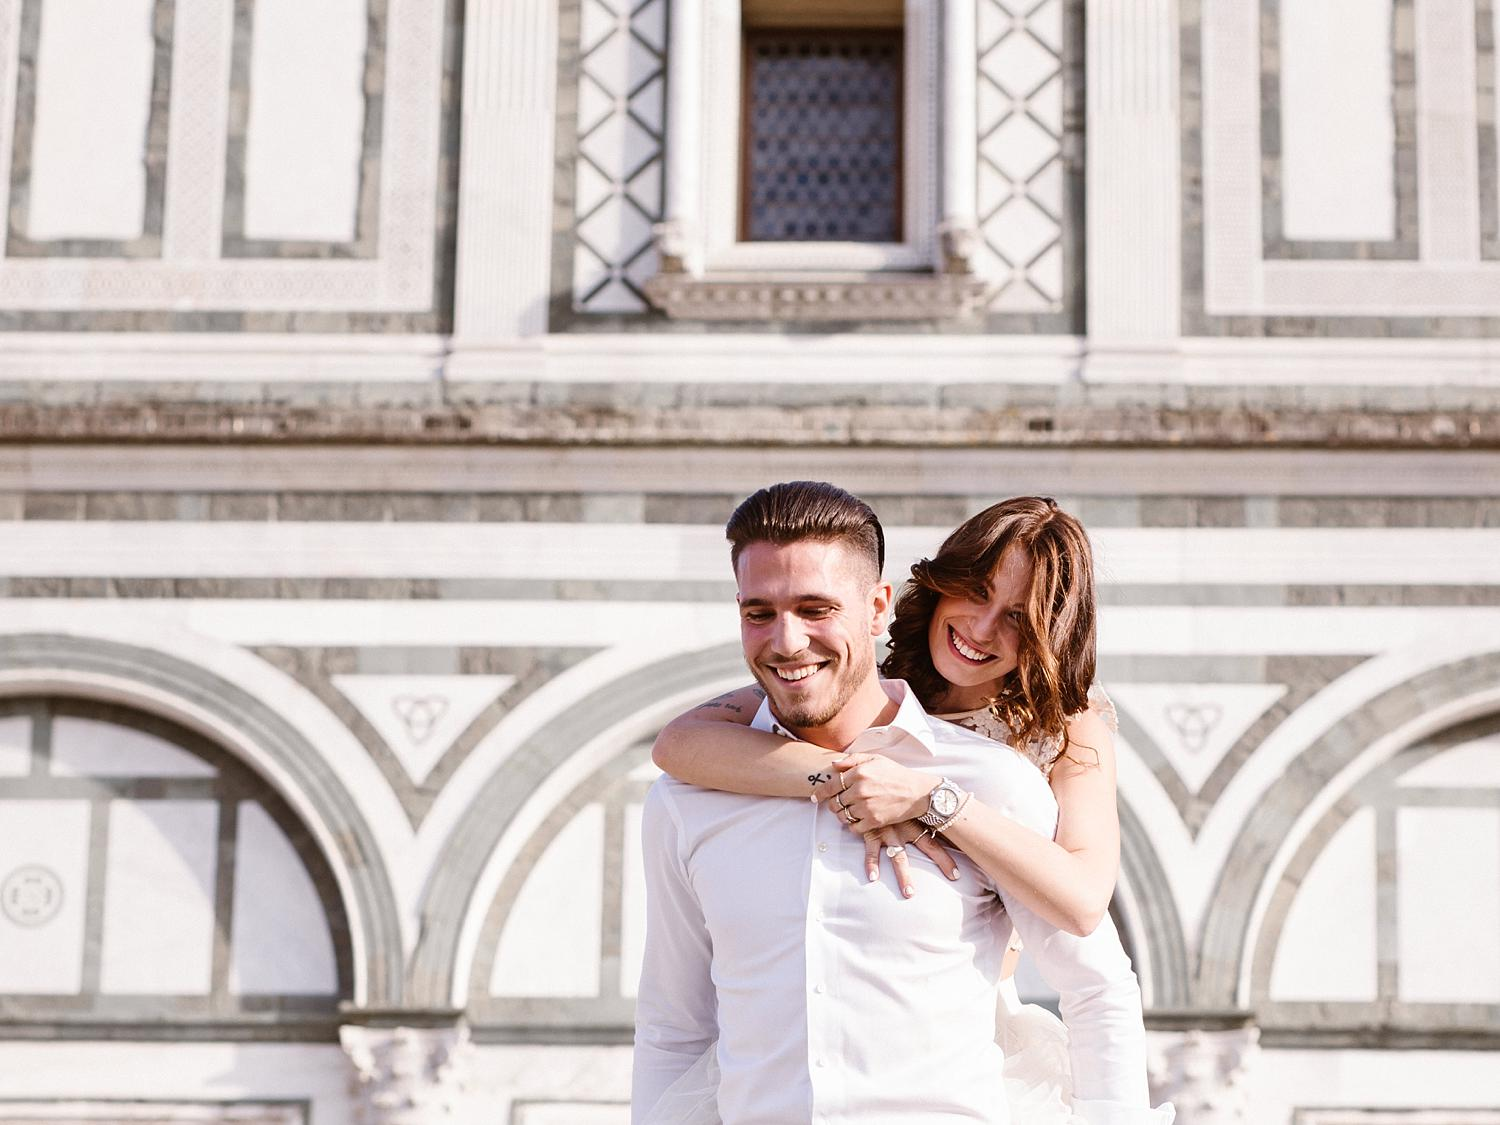 weddingphotographer florence 30 - Maddalena & Arturo - A Chic Anniversary Session in Florence